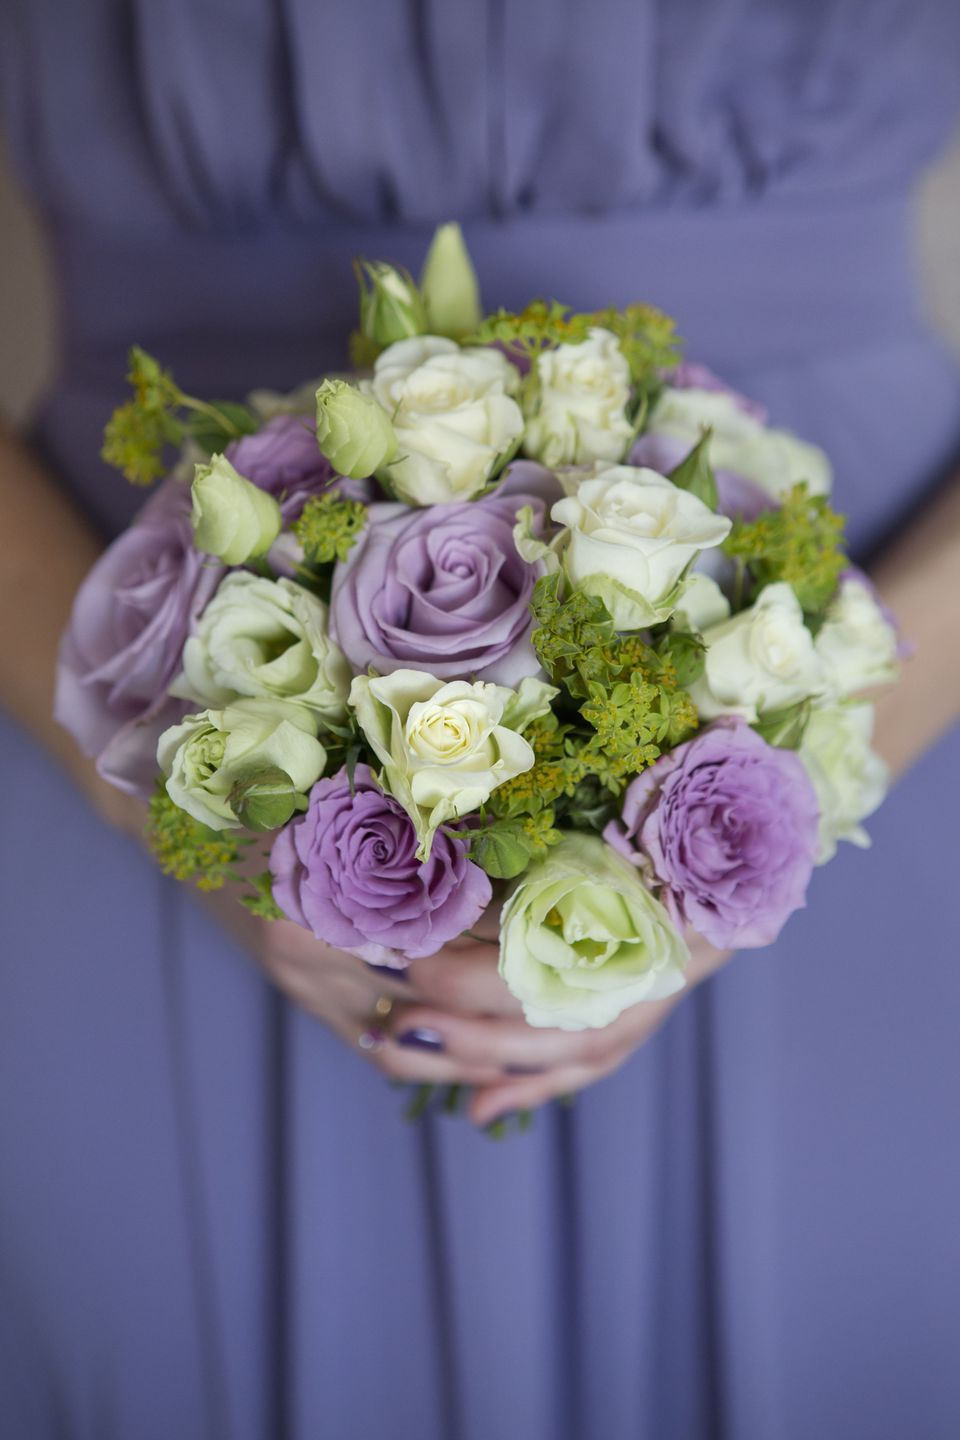 Bells Of Ireland Flowers Meaning Spring Purple Bridal Bouquet